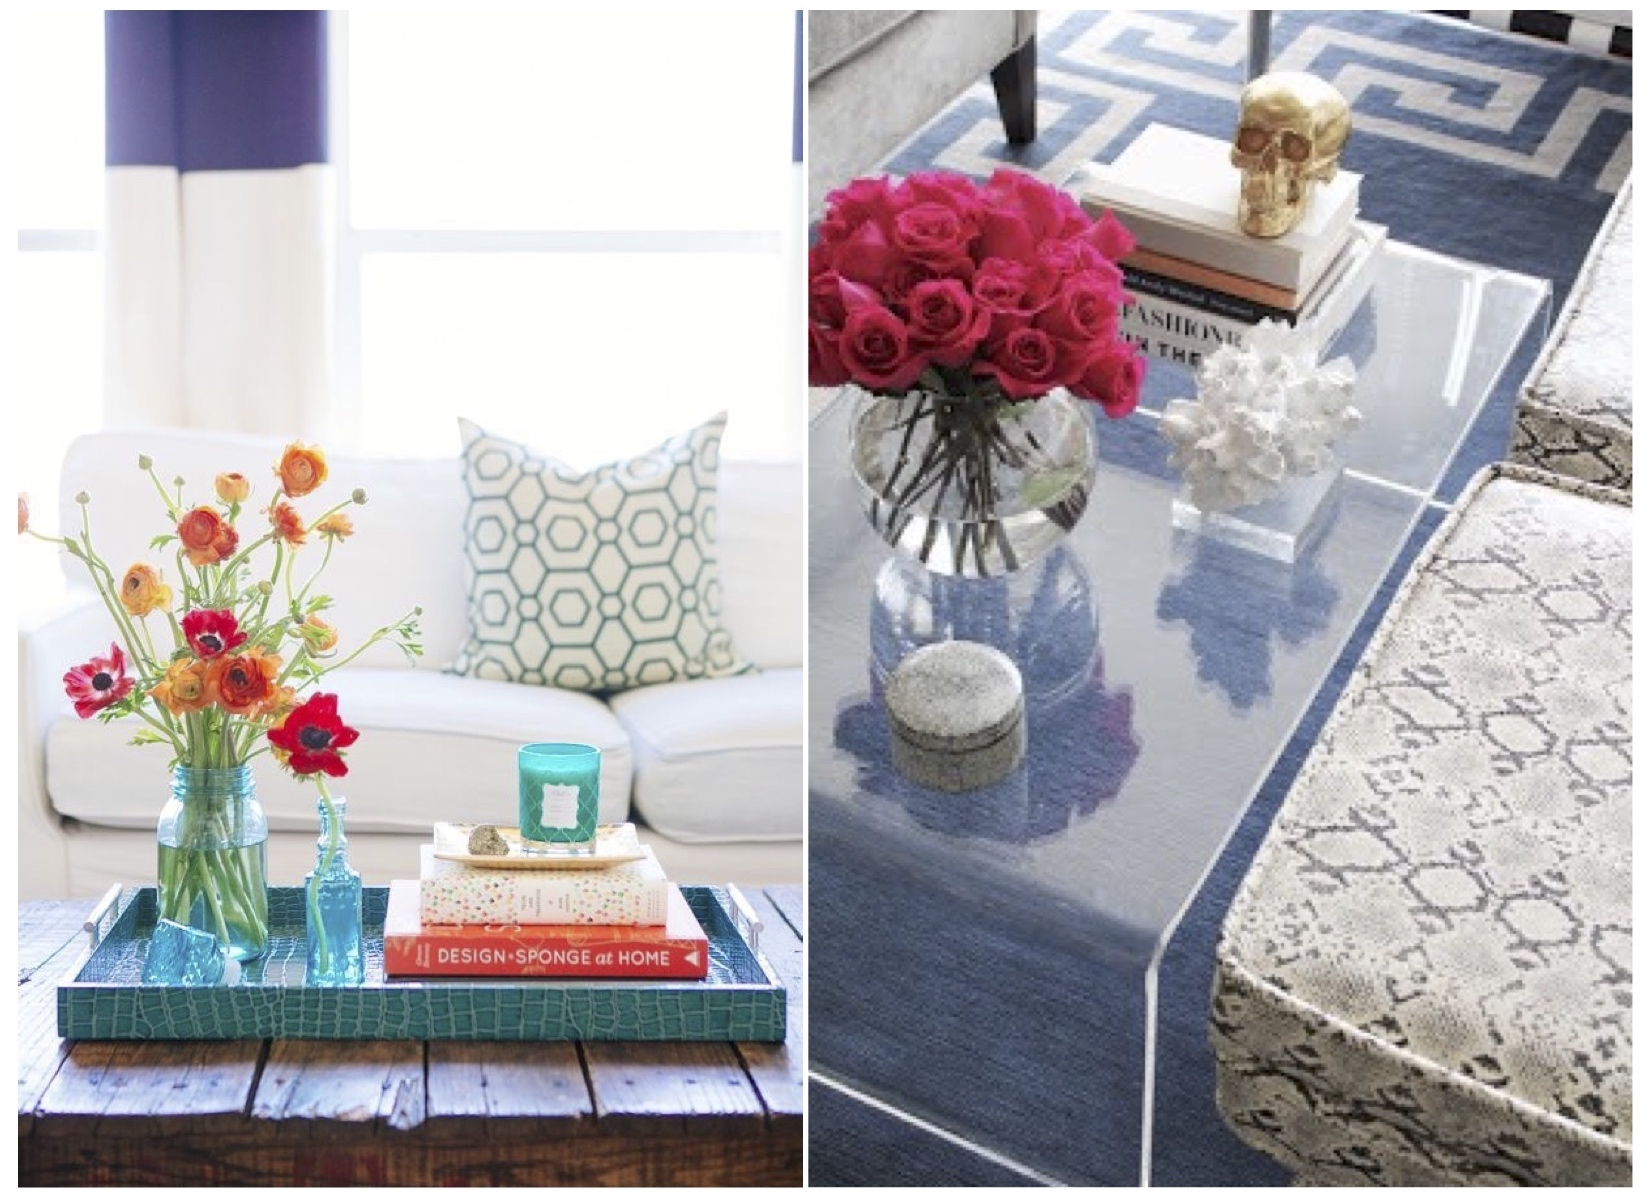 Refreshing your coffee table scape is really easy and fun to do by swapping out the tray with a vibrant colored one, adding a yummy scented candle and finishing it off with abouquet of fresh flowers. Picking up a couple inexpensive accent ottomans with a fun color and/or pattern adds interest and more seating. This is something we love to include in our furniture design packages!